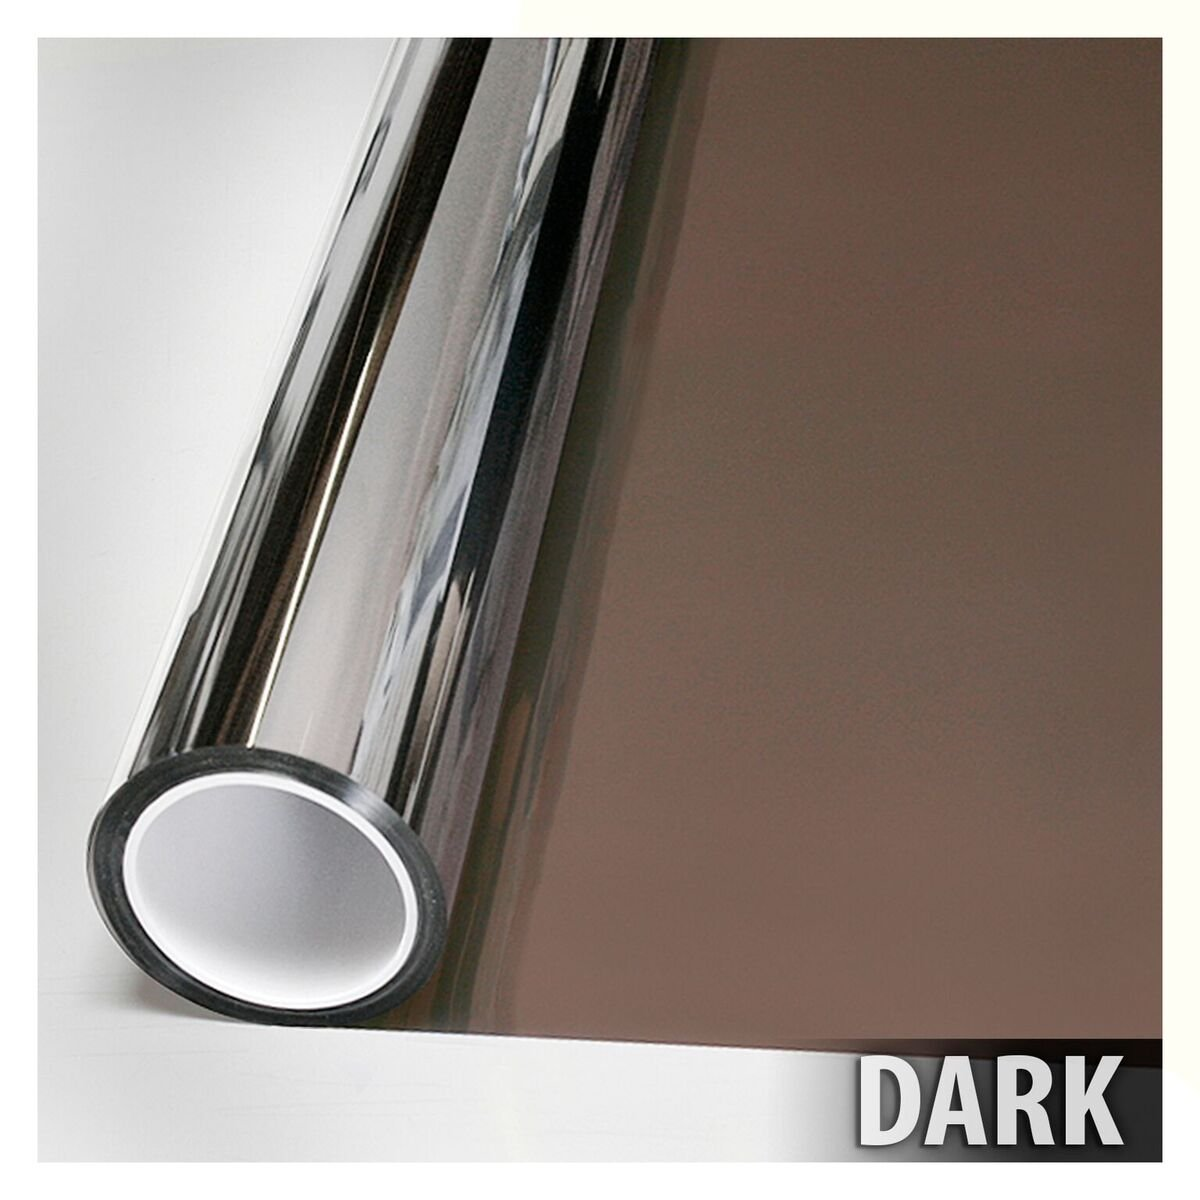 BDF PRBR Window Film Premium Color High Heat Control and Daytime Privacy Bronze (48in X 24ft) by Buydecorativefilm (Image #3)